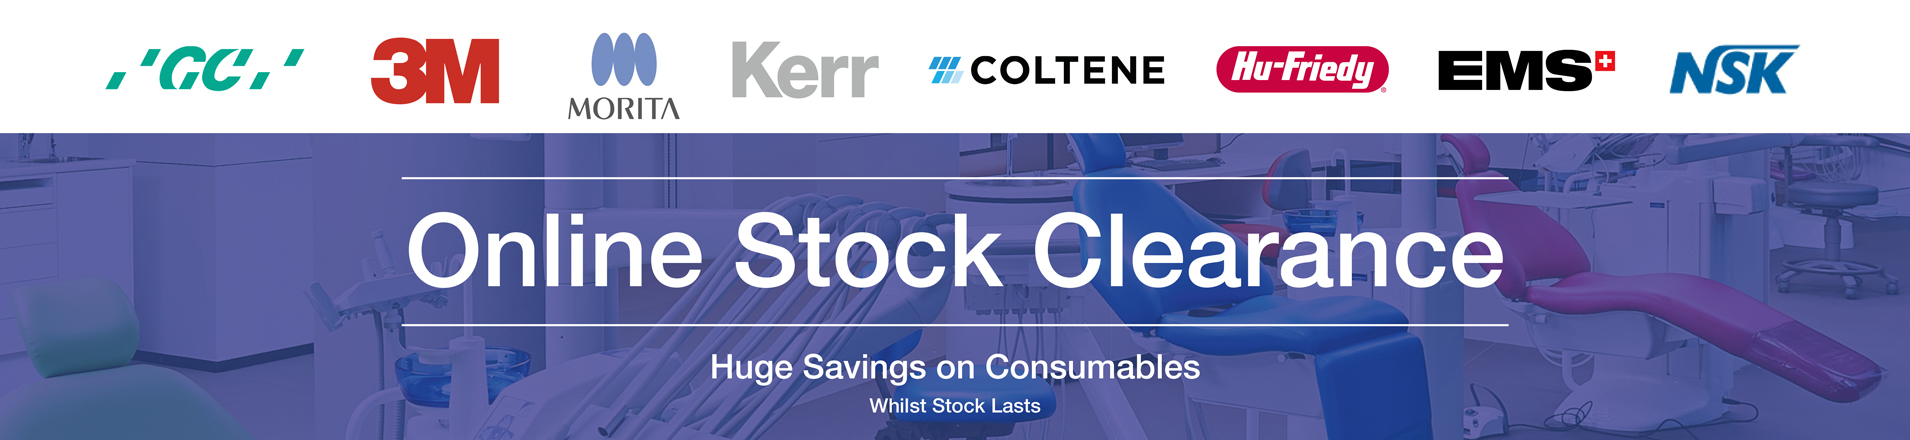 Online Stock Clearance